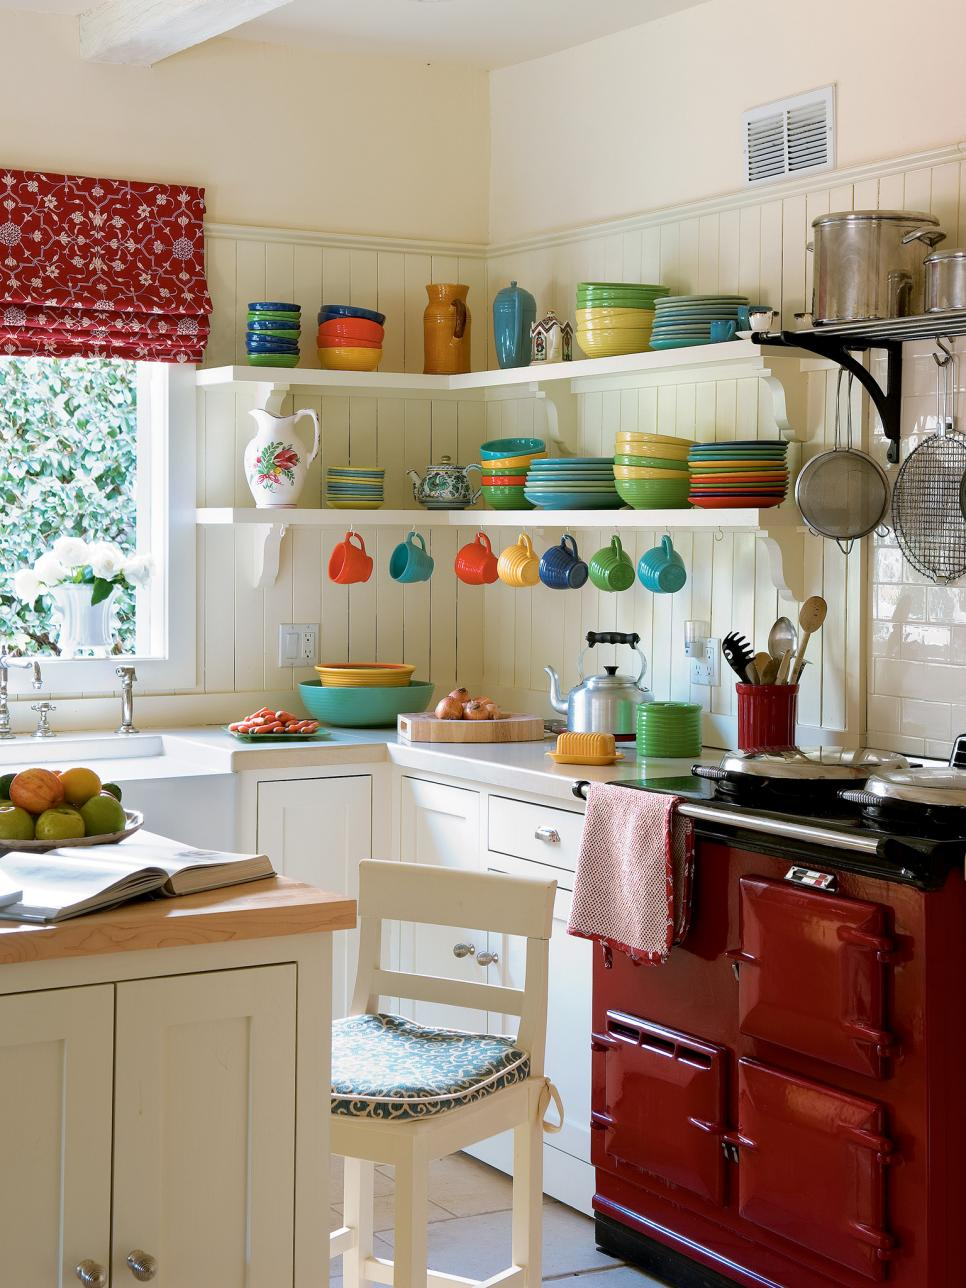 small kitchen design ideas and inspiration - Small Kitchen Decorating Ideas